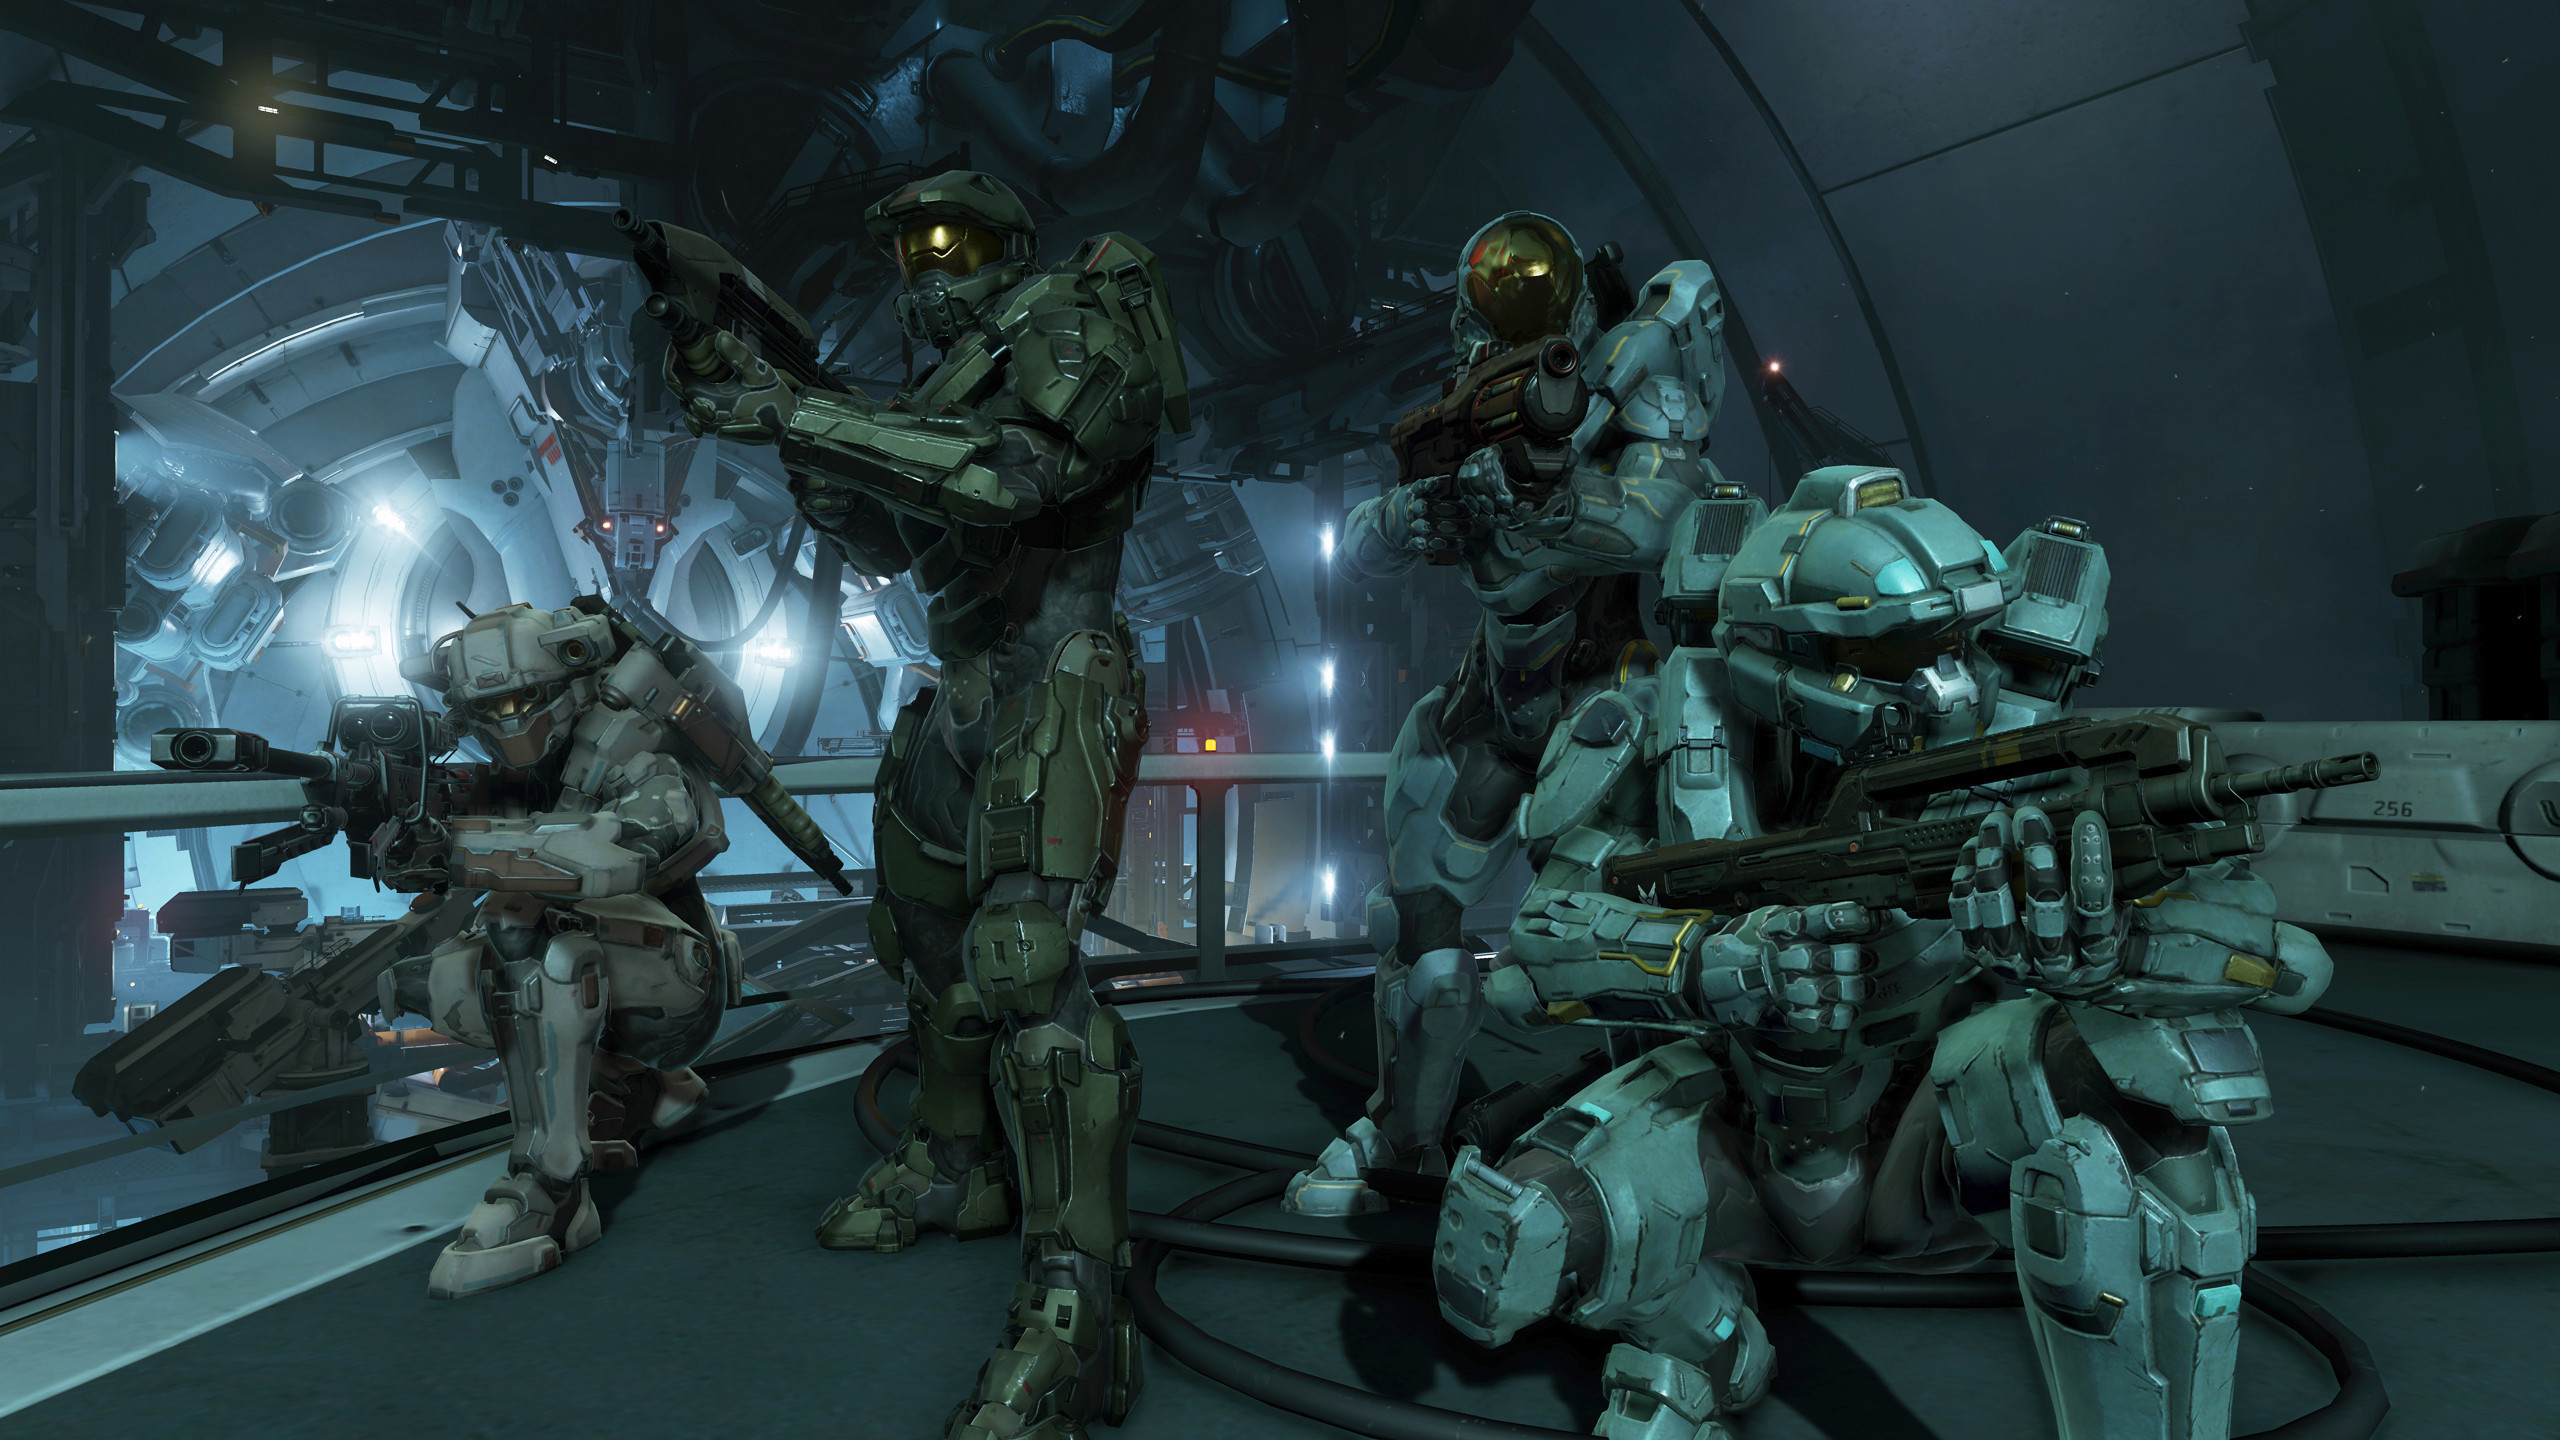 Blue Team in Halo 5: Guardians